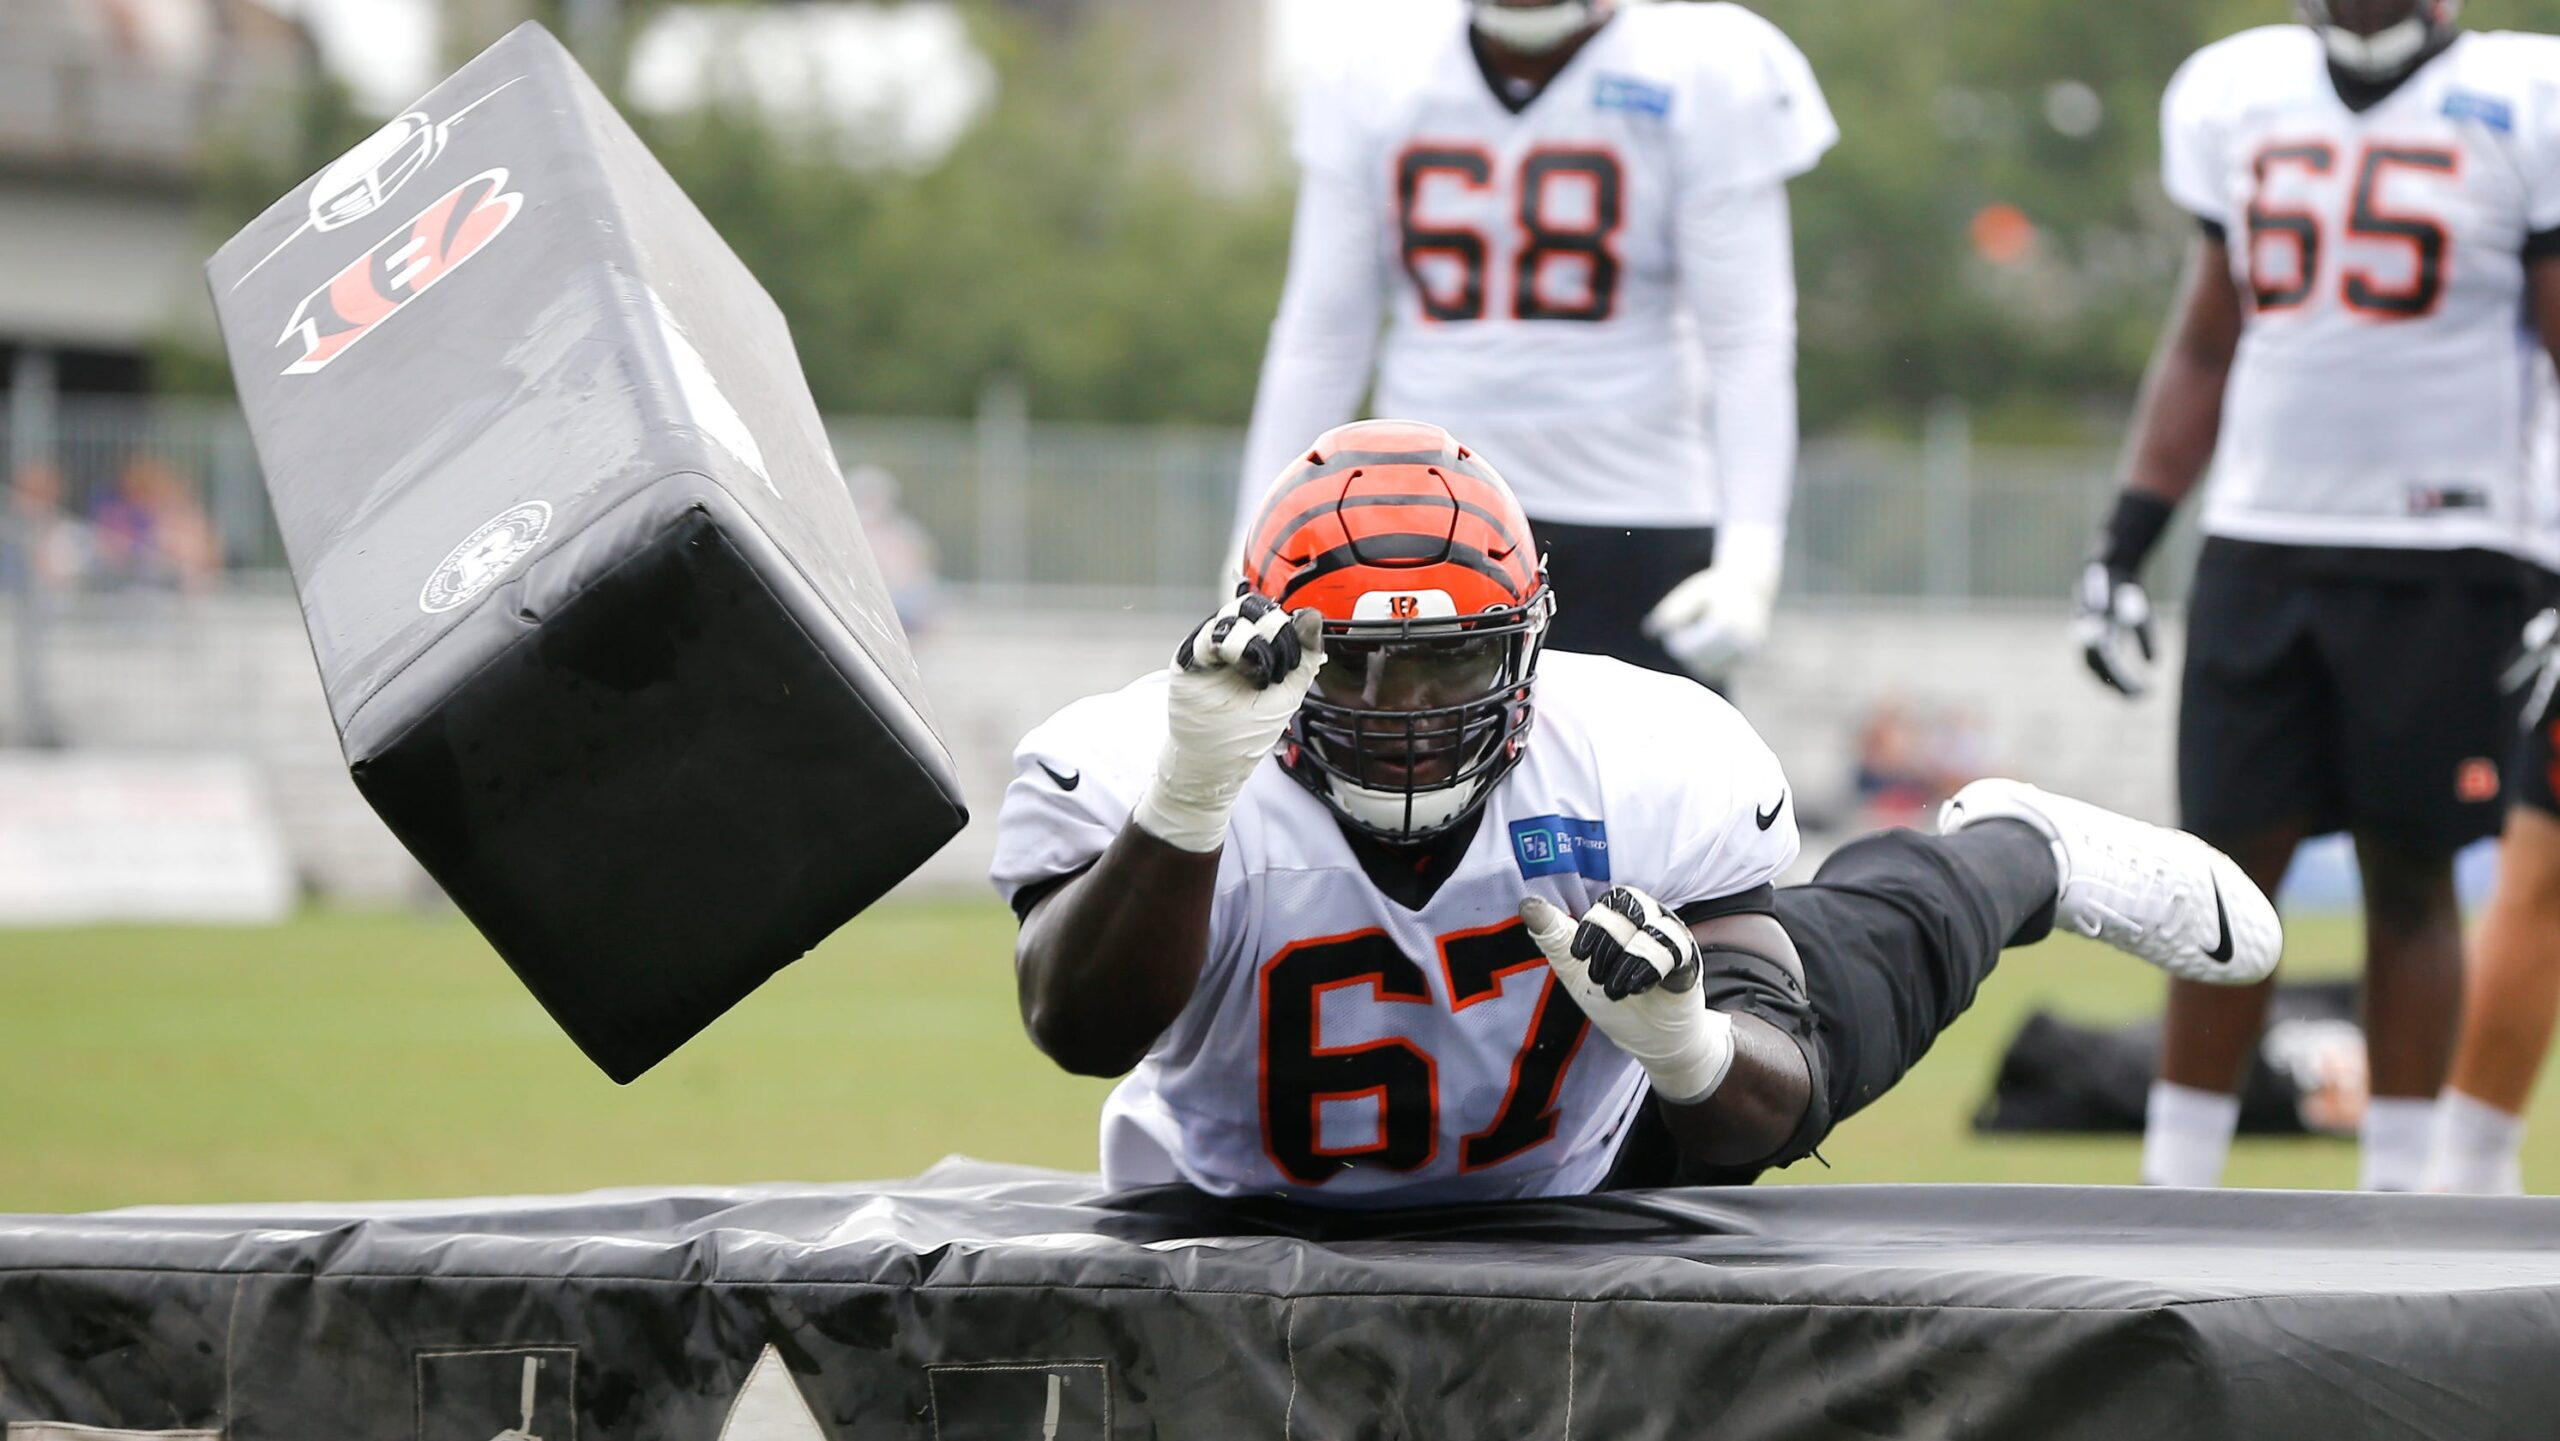 Panthers Add Guard To Replace Turner And Van Roten